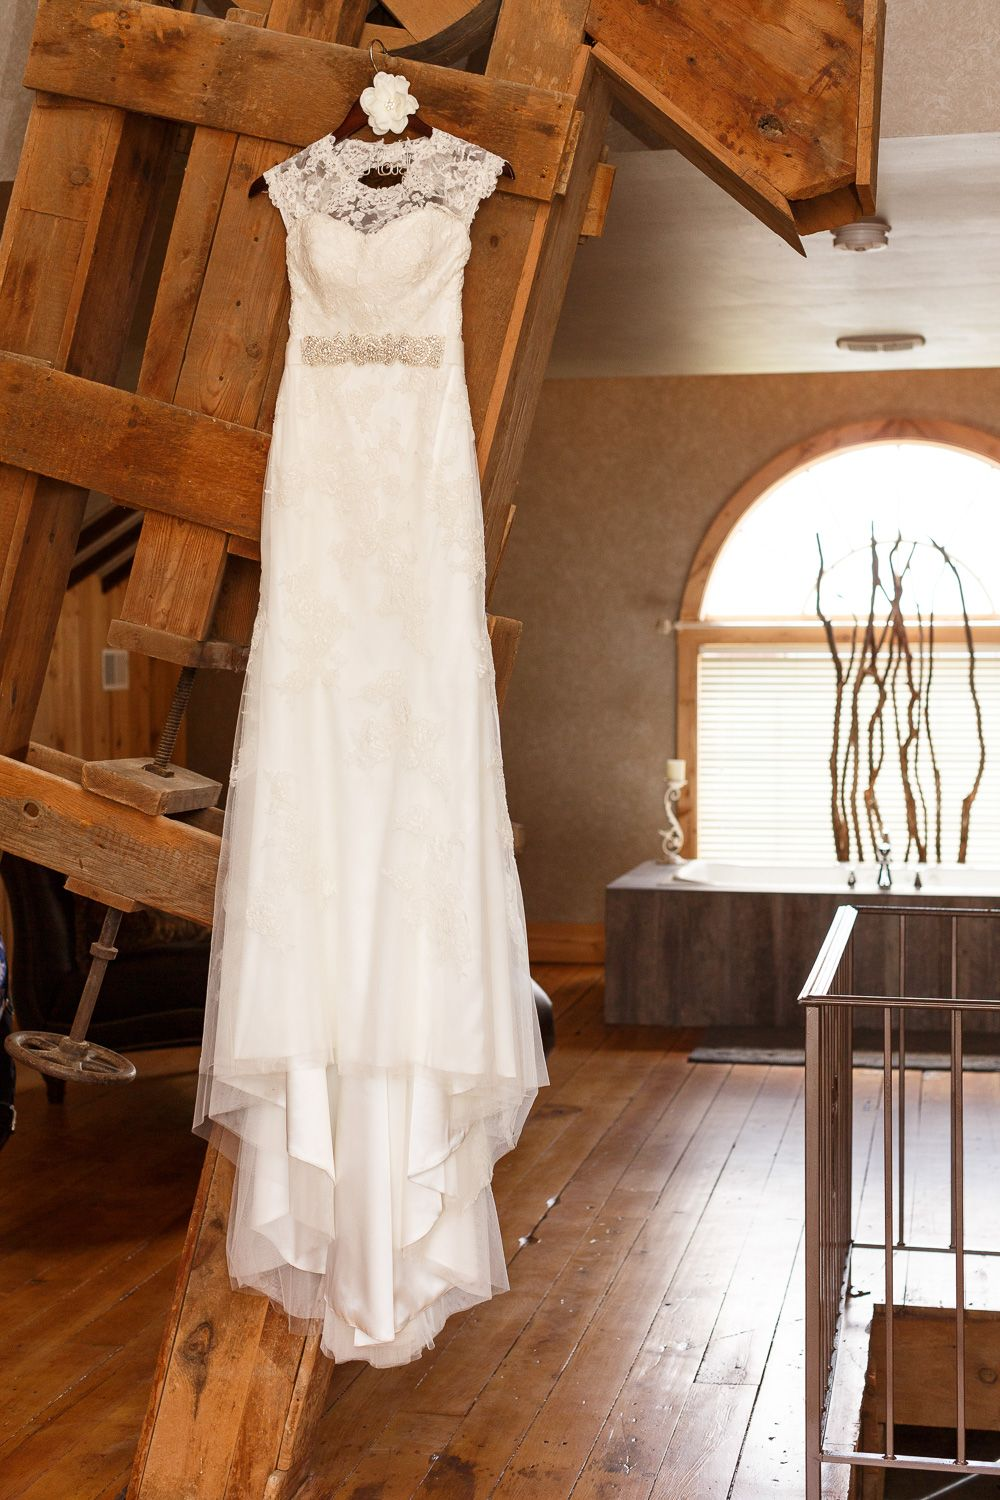 Wedding Dress. Wedding photography taken at the Barns Of Old Glory ...